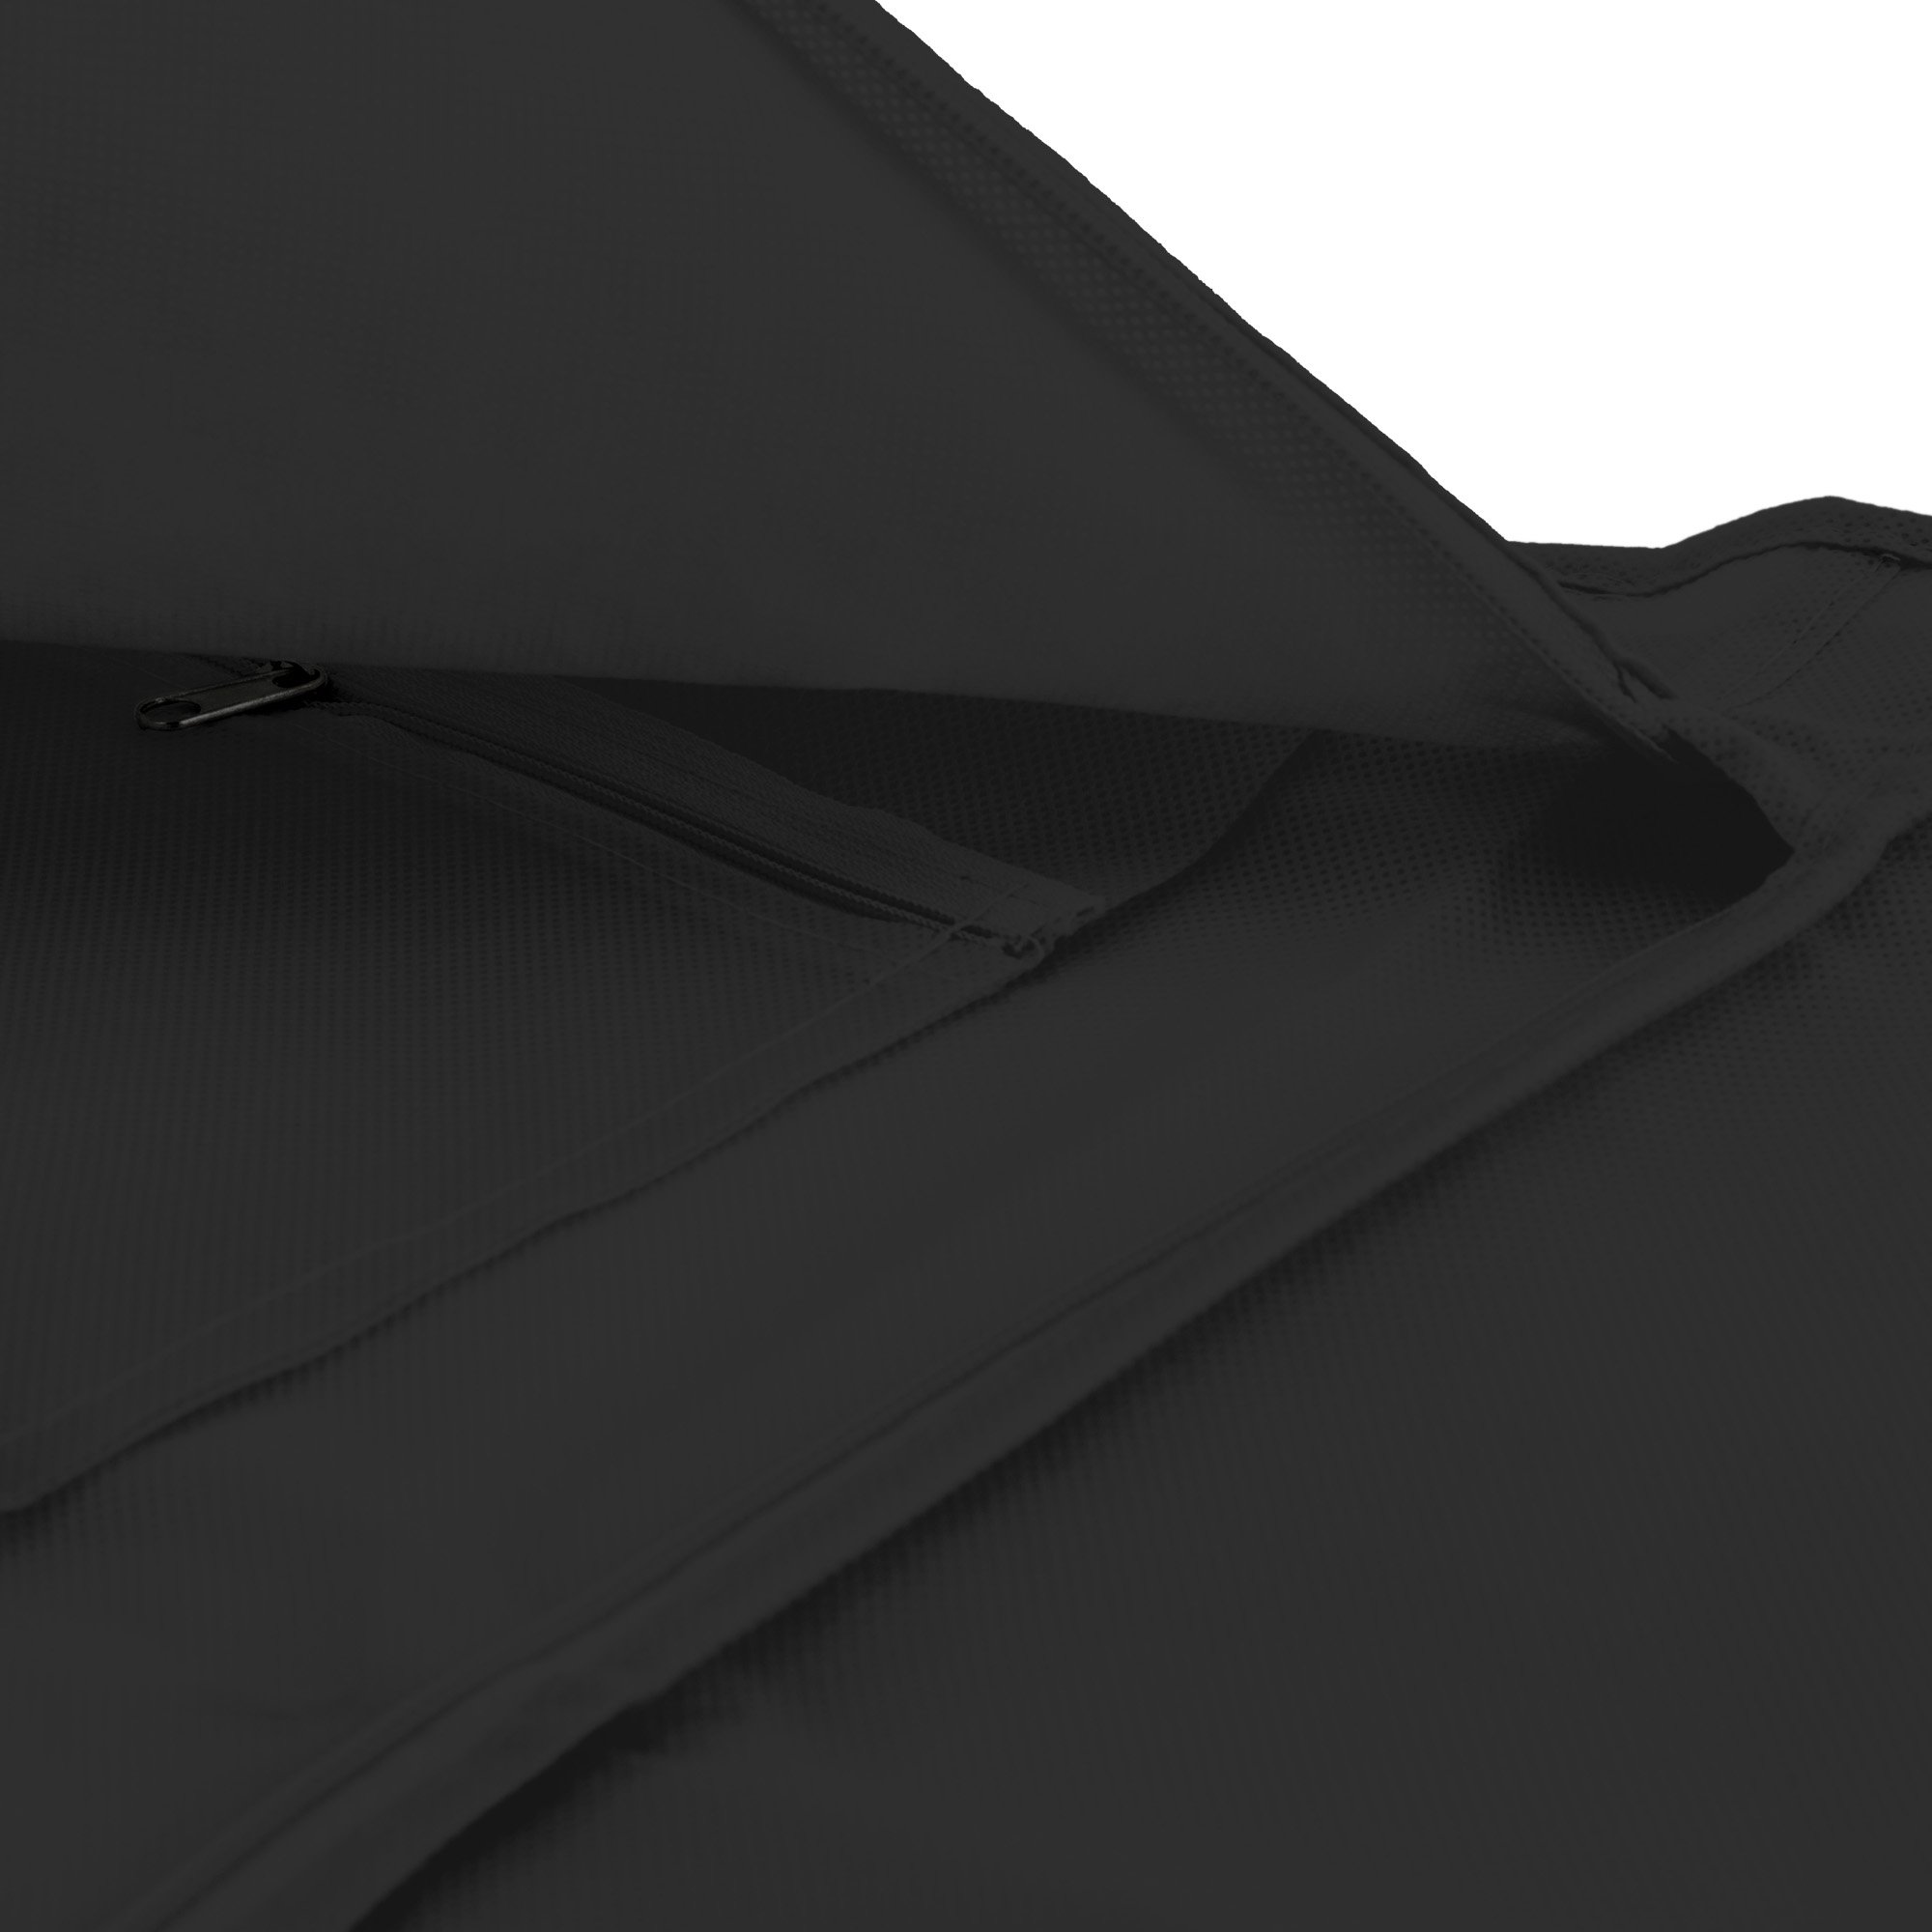 Hangerworld Black Breathable 60 inch Suit Garment Bag - Extra Long cover for Dresses and Gowns, Featuring a Secret Internal Zipped Pocket for safe storage. by HANGERWORLD (Image #7)